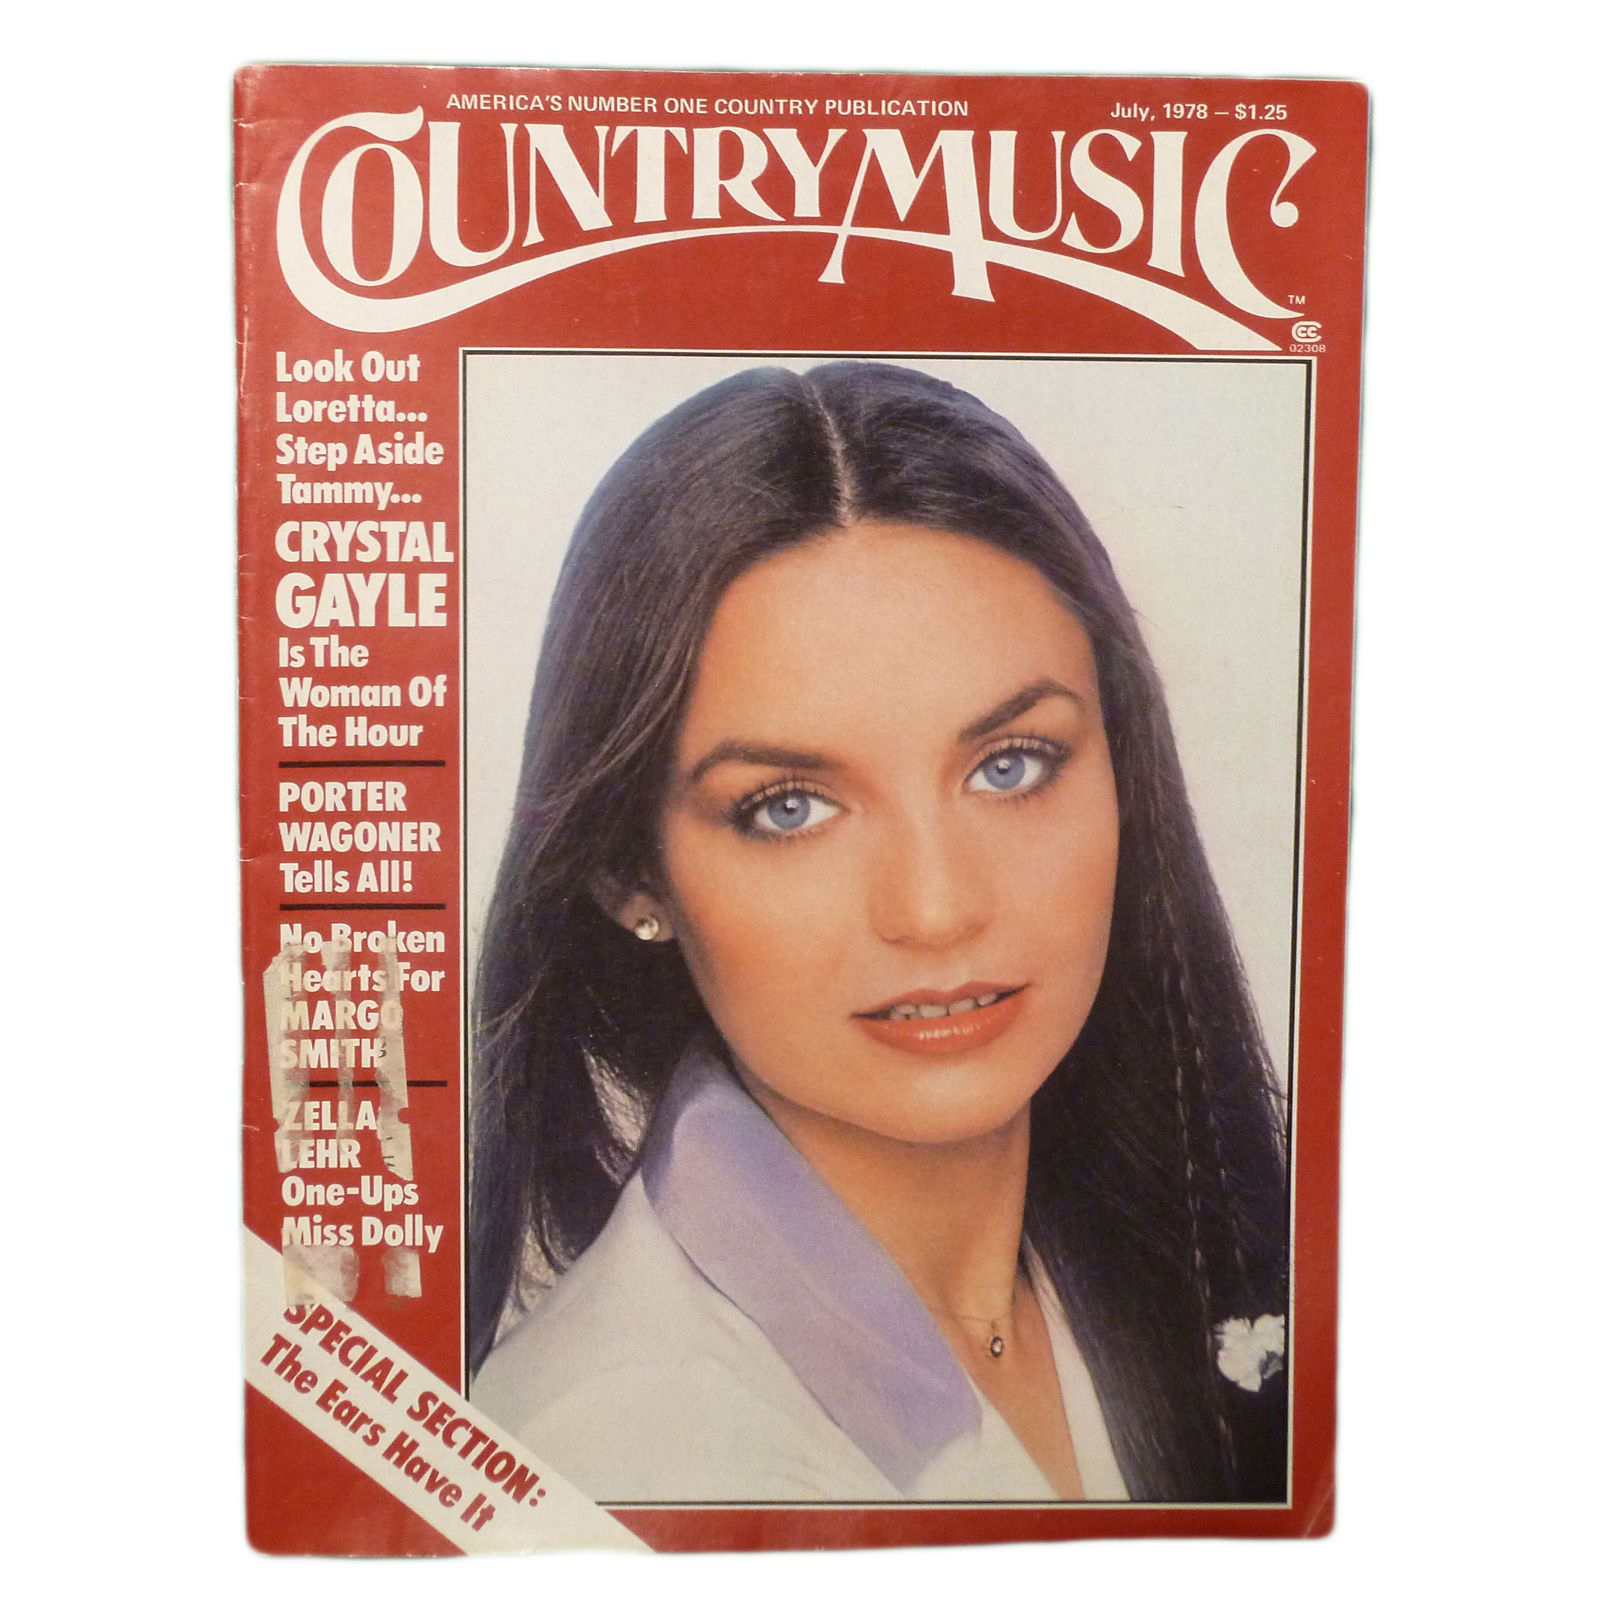 COUNTRY MUSIC MAGAZINE SEPTEMBER 1978